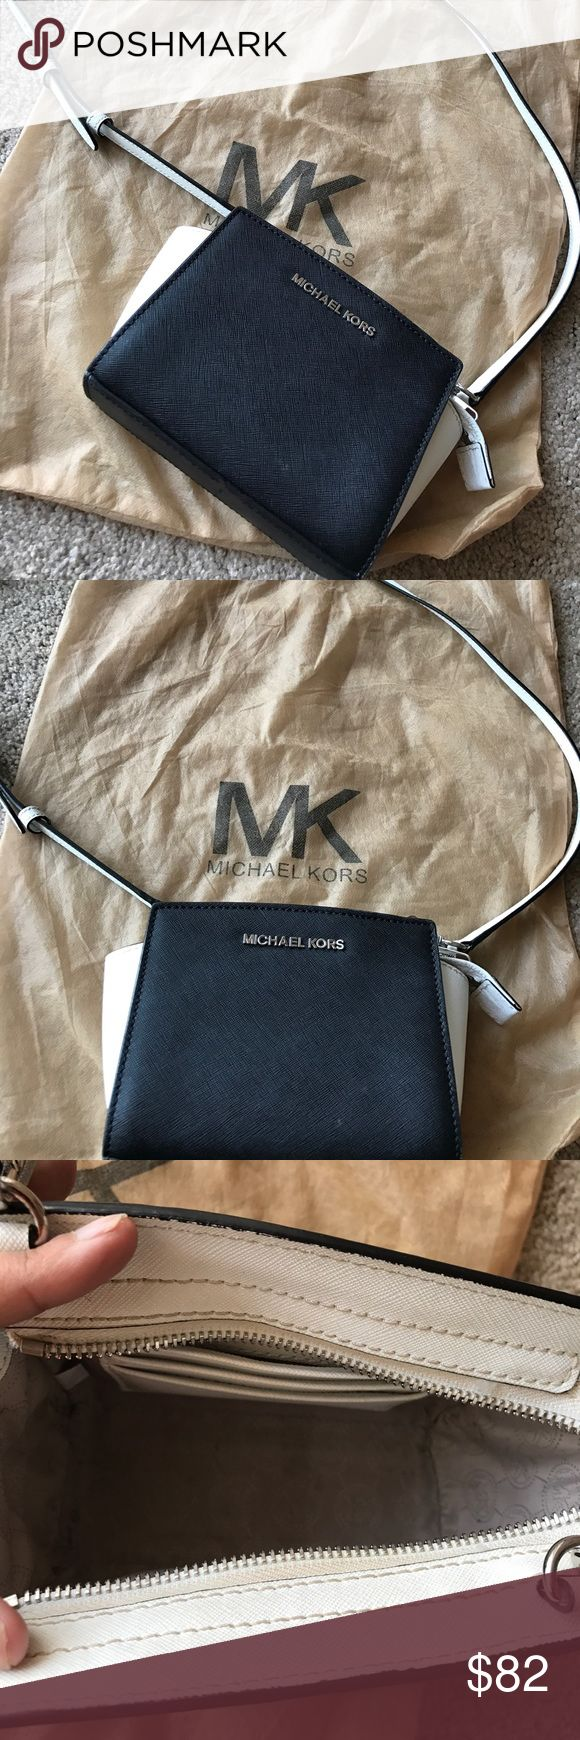 Michael Kors bag Price is firm. Michael Kors Mini Selma bag. Black and white. Comes with long strap as well as dust bag. Good condition. I'm just looking for a larger sized Selma now. Michael Kors Bags Crossbody Bags